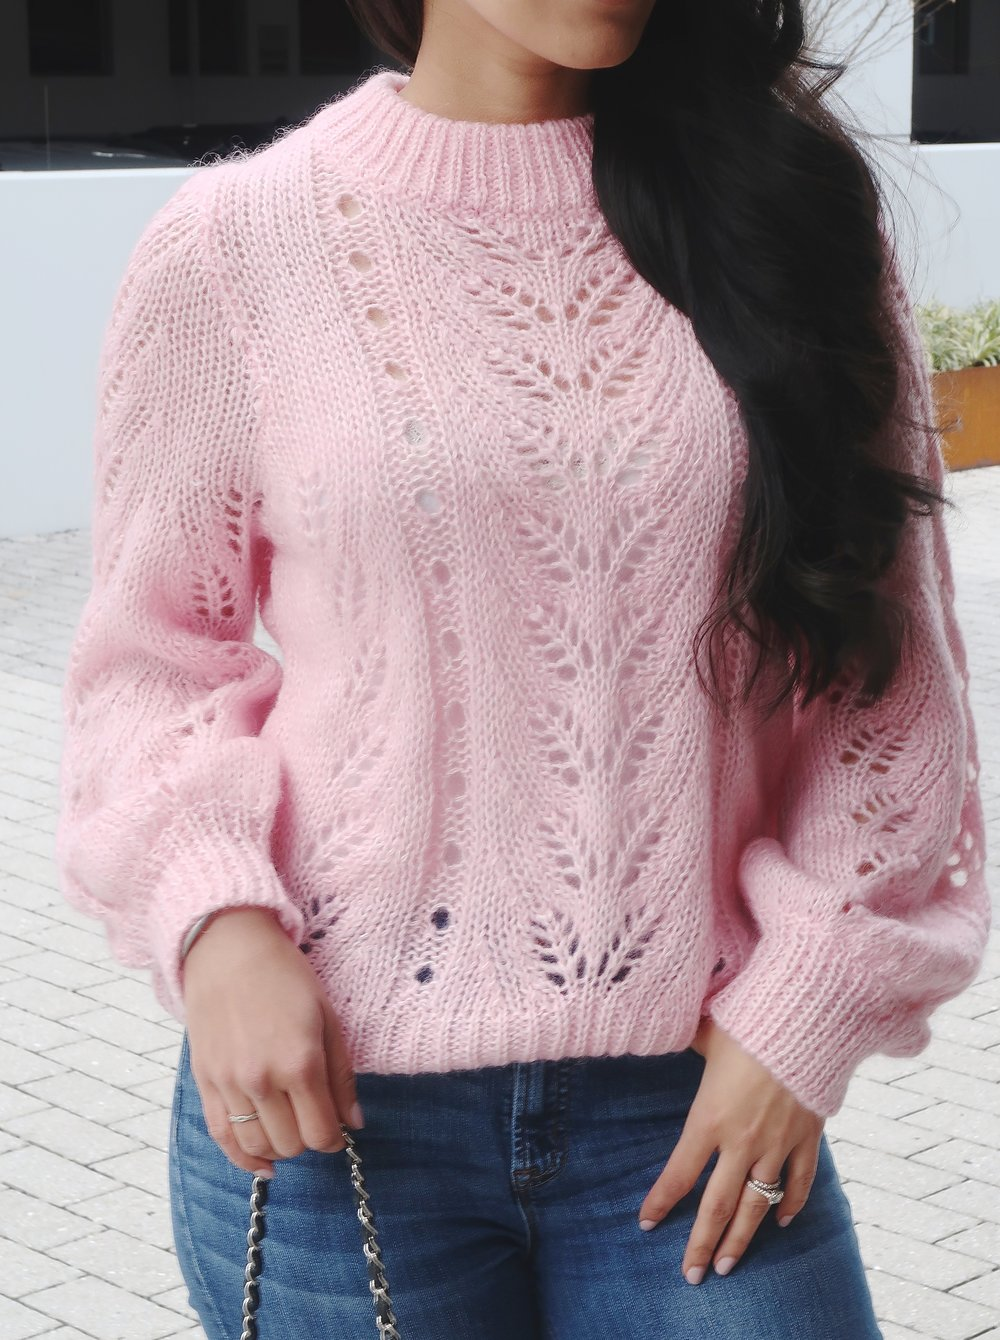 H&M-knit-sweater-Ganni-Dupe.jpg